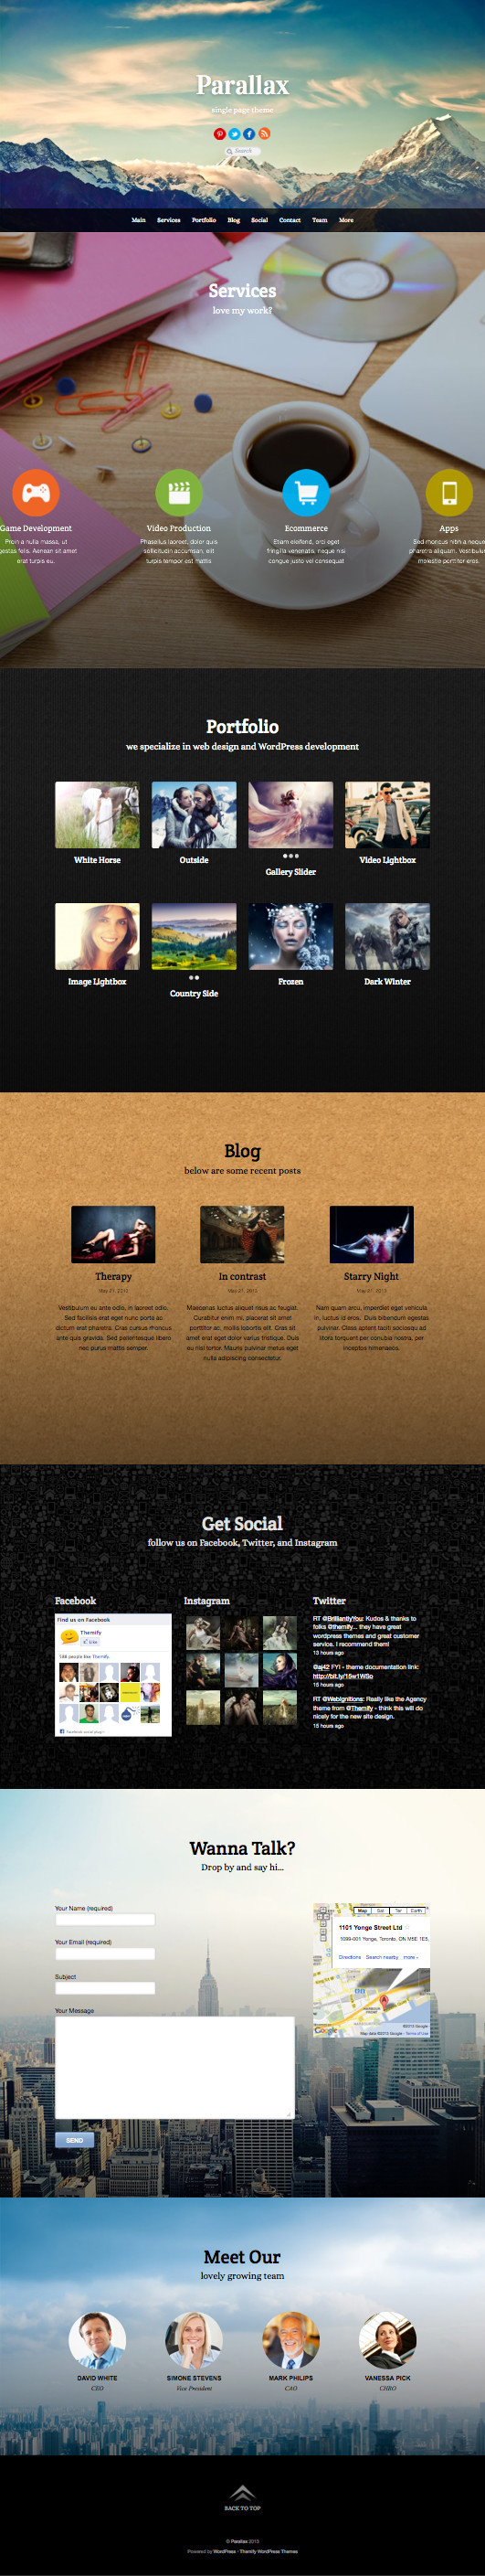 Parallax WordPress Single Page Scrolling Theme